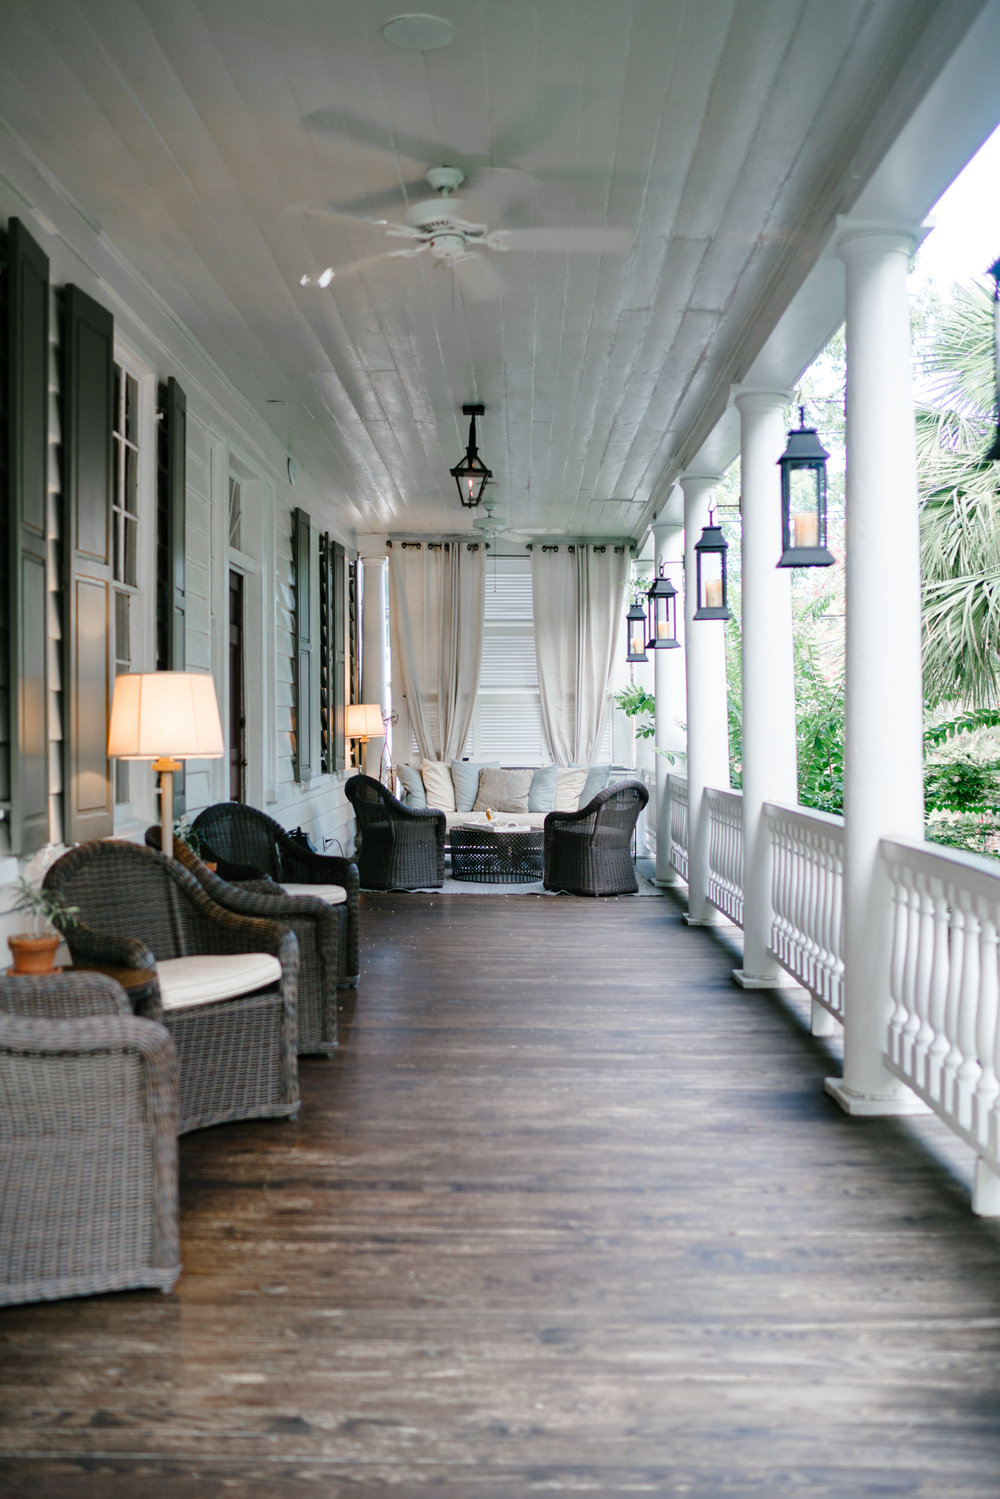 Where to stay in Charleston | Never Settle Travel